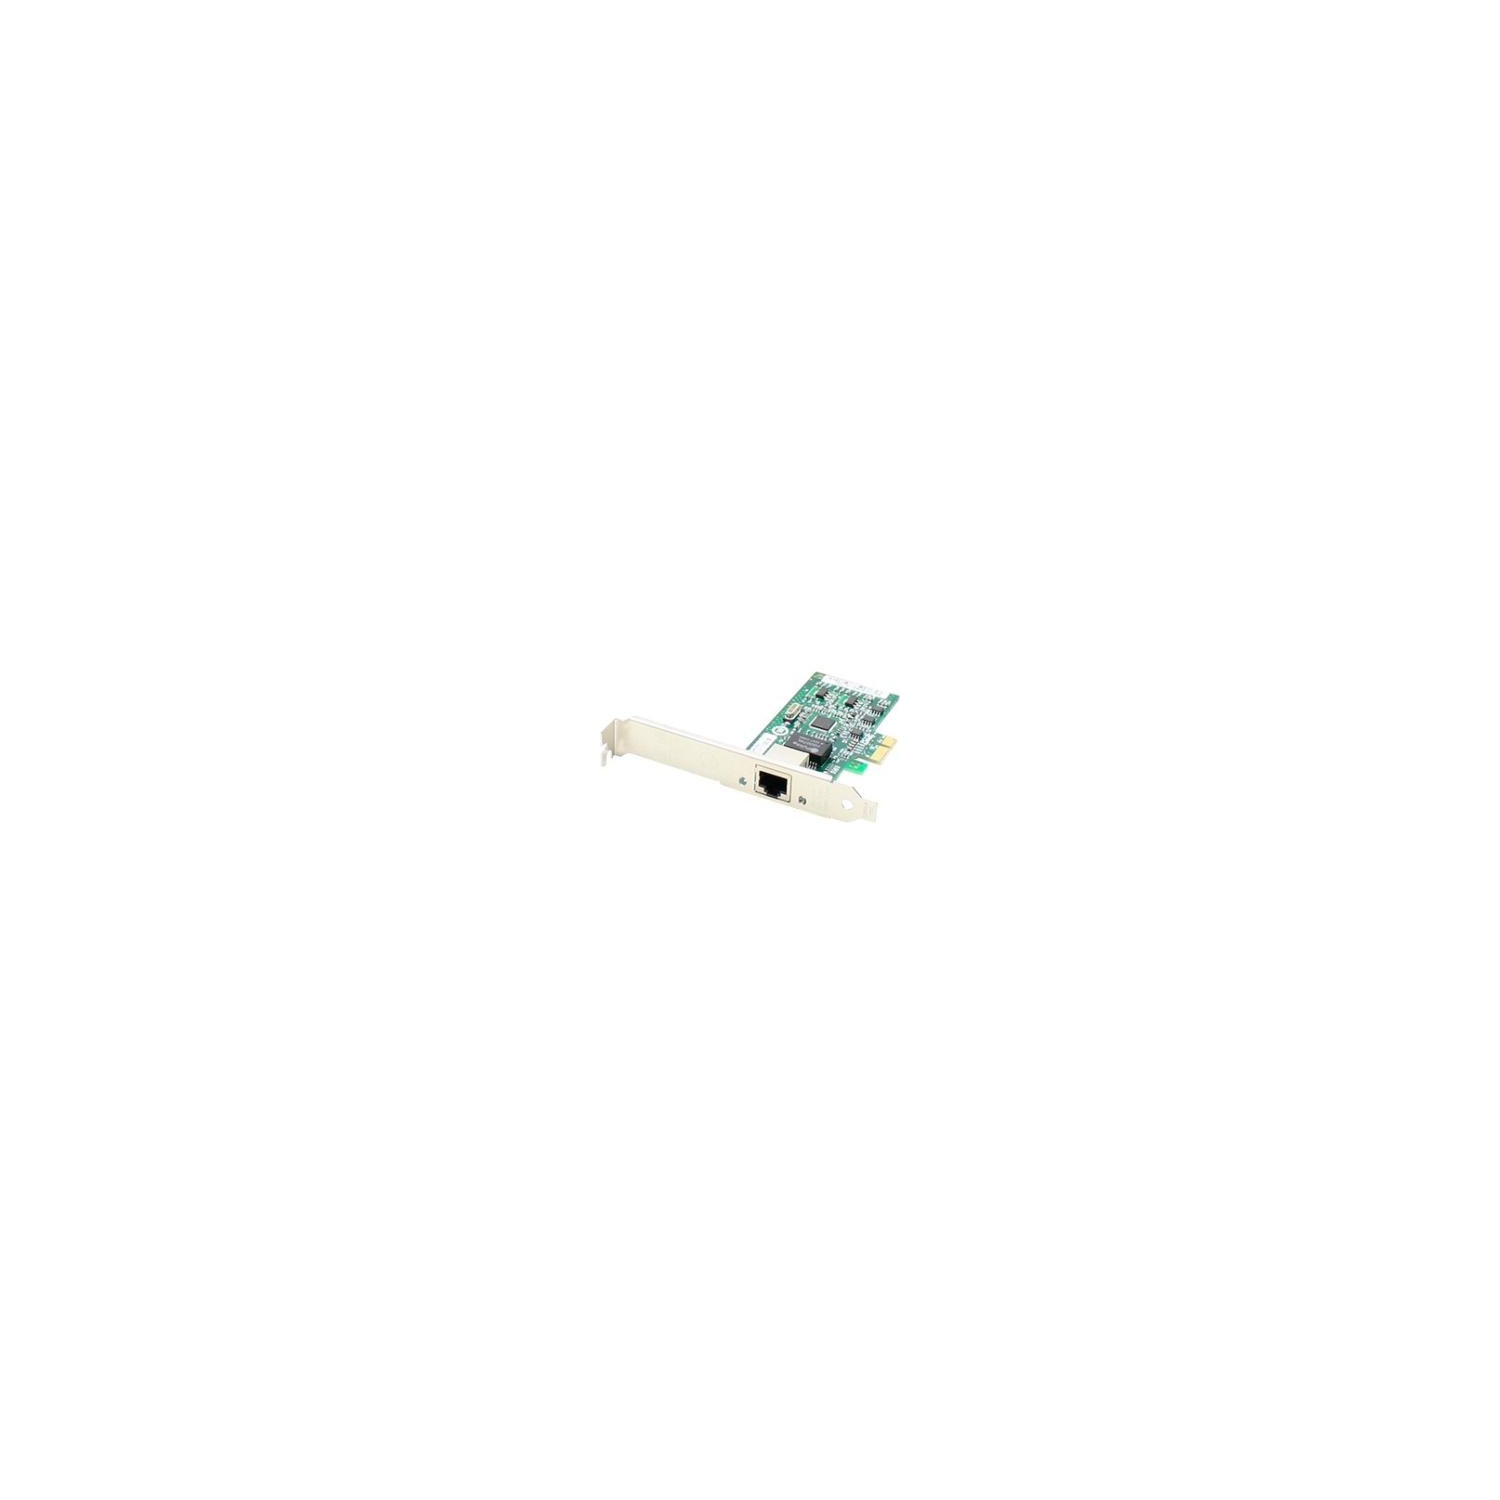 Addon Tp Link Gigabit Ethernet Card Pci Express X4 1 Ports Lan Tg 3468 Twisted Pair More From Best Buy Marketplace Canada